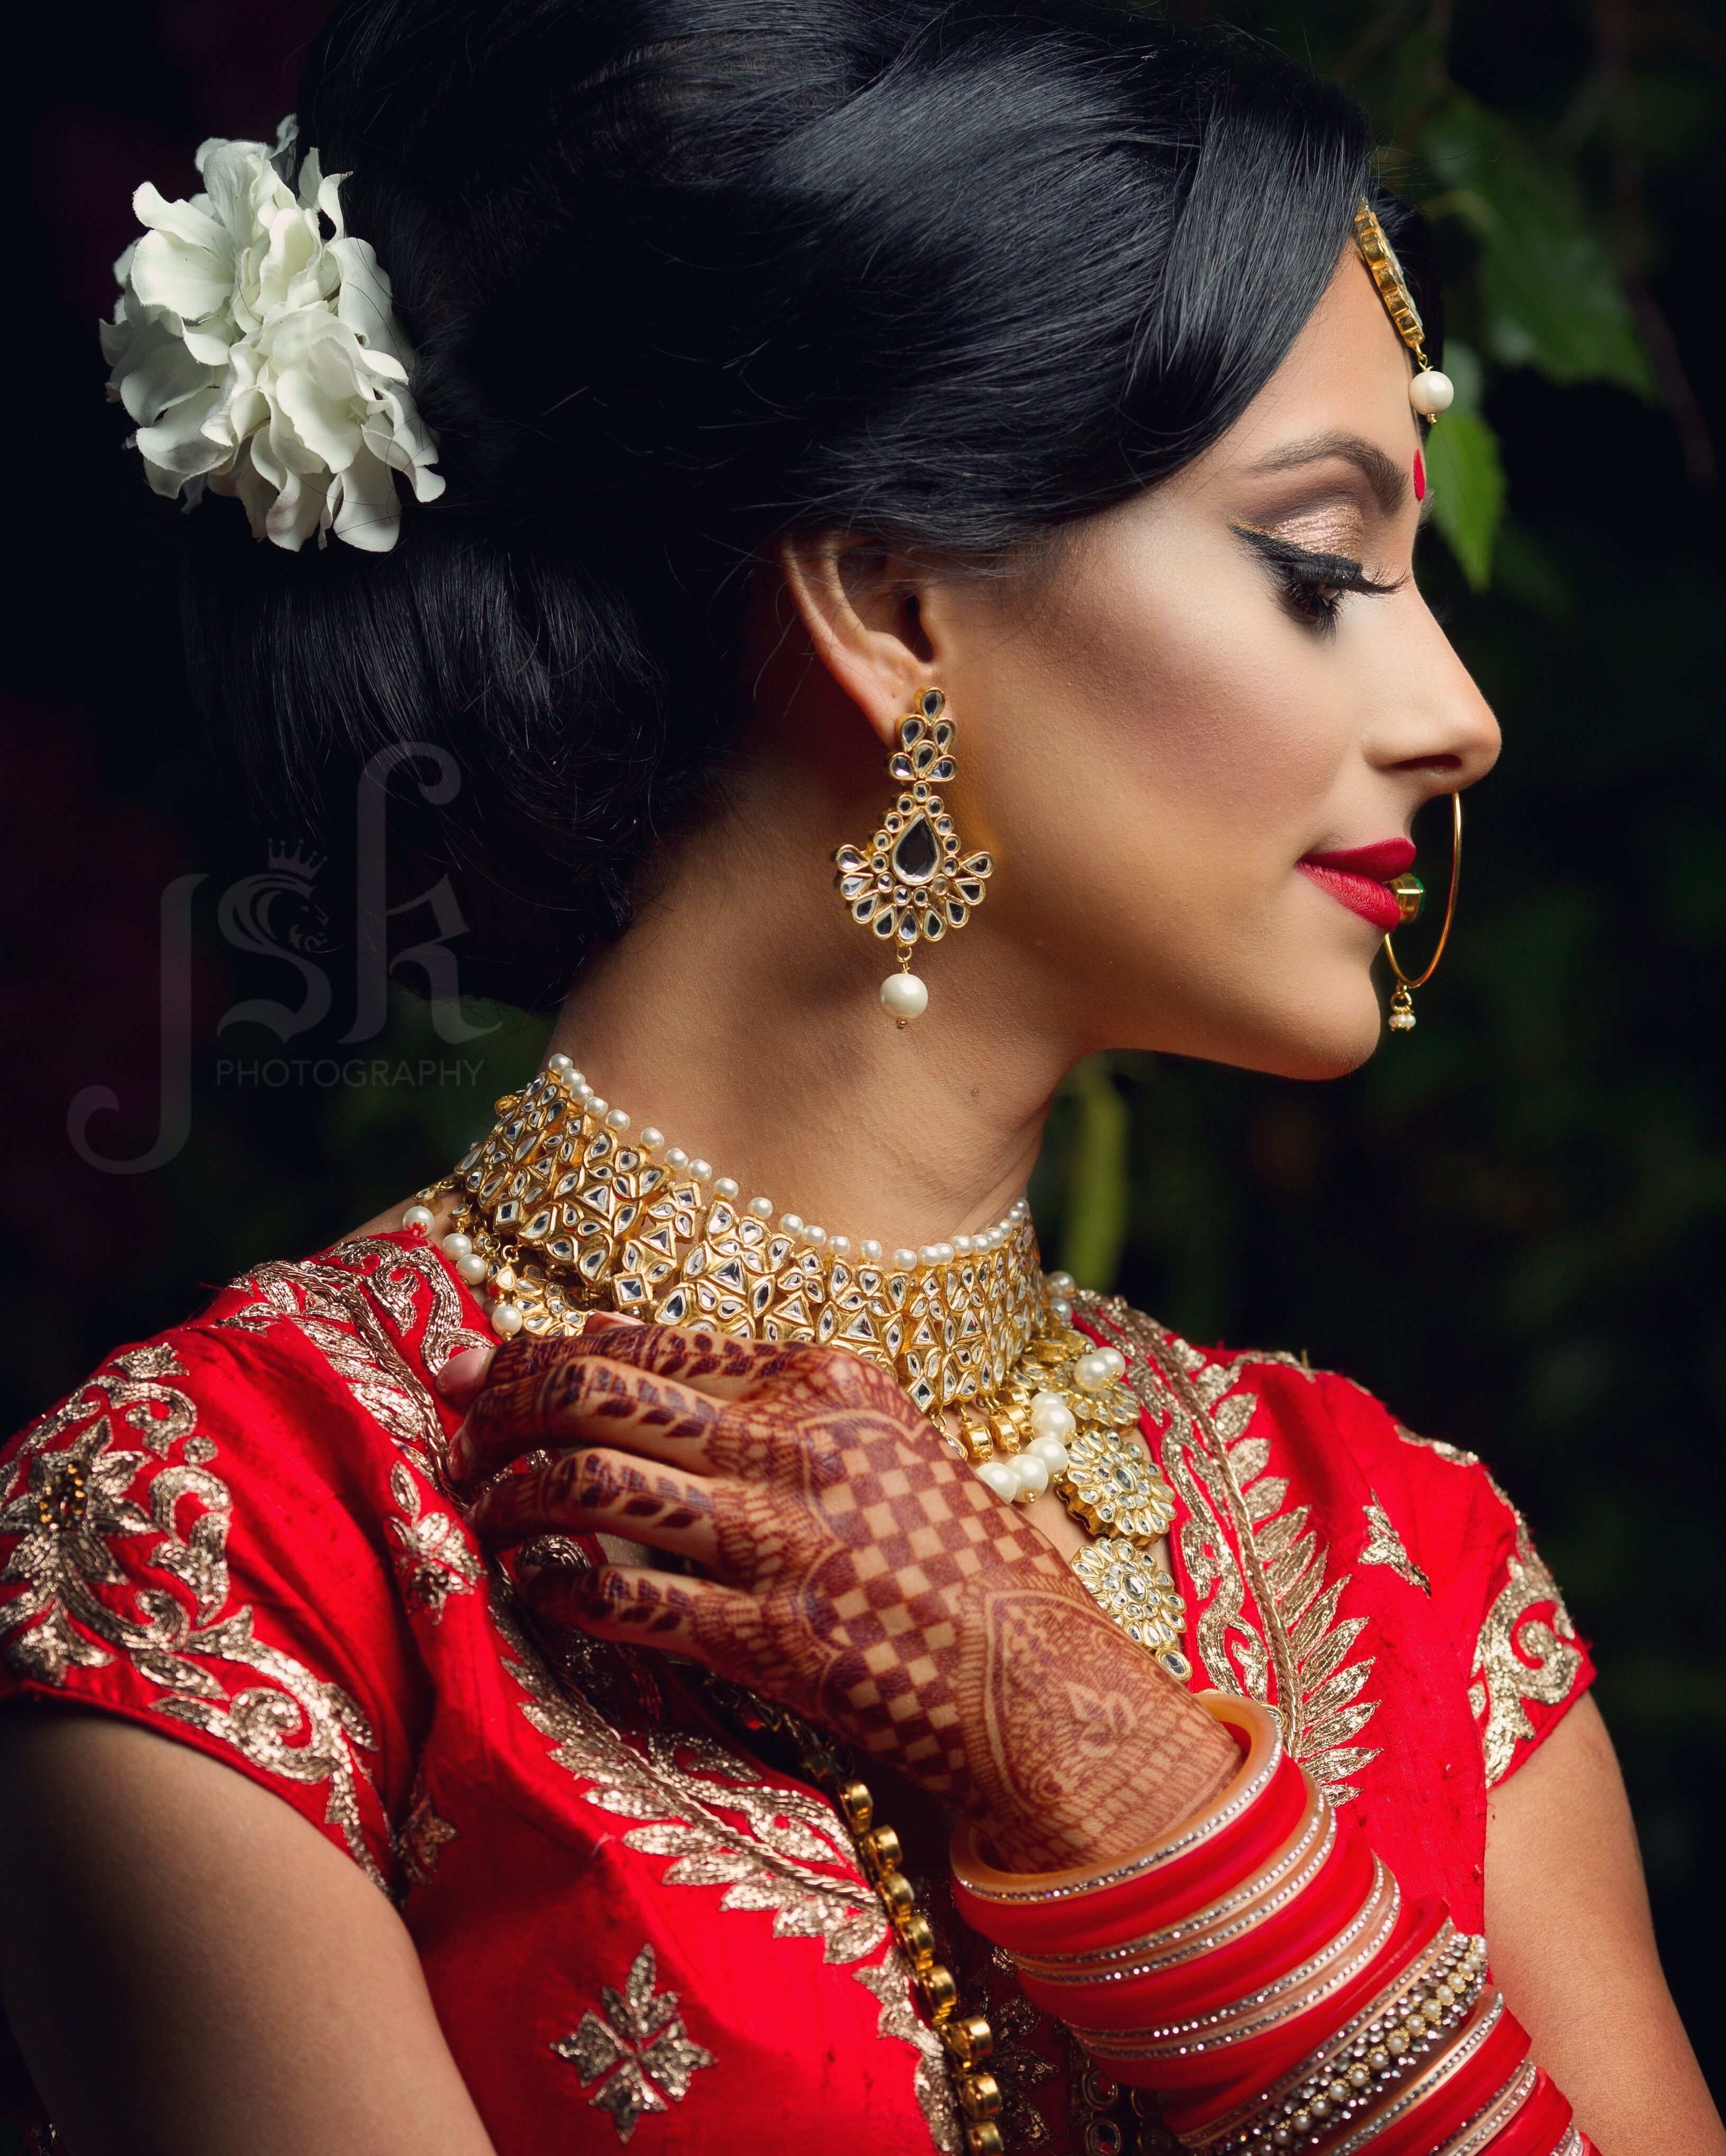 Editorial photo shoot by jsk photography traditional red